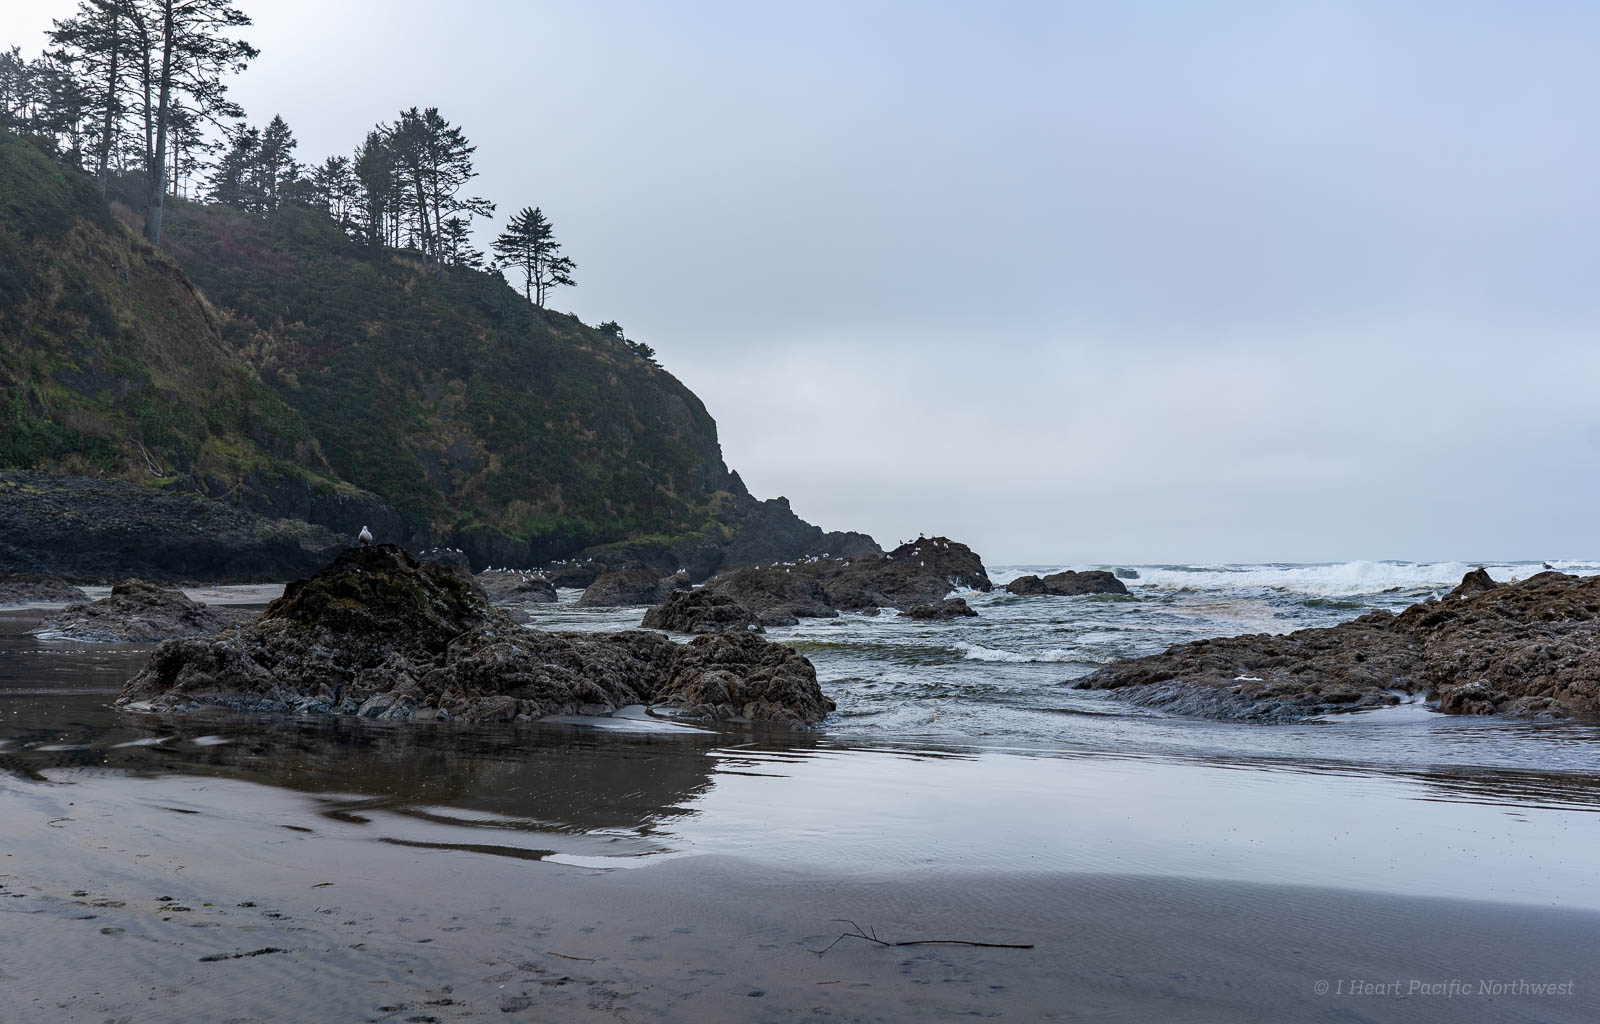 Cape Disappointment camping trip